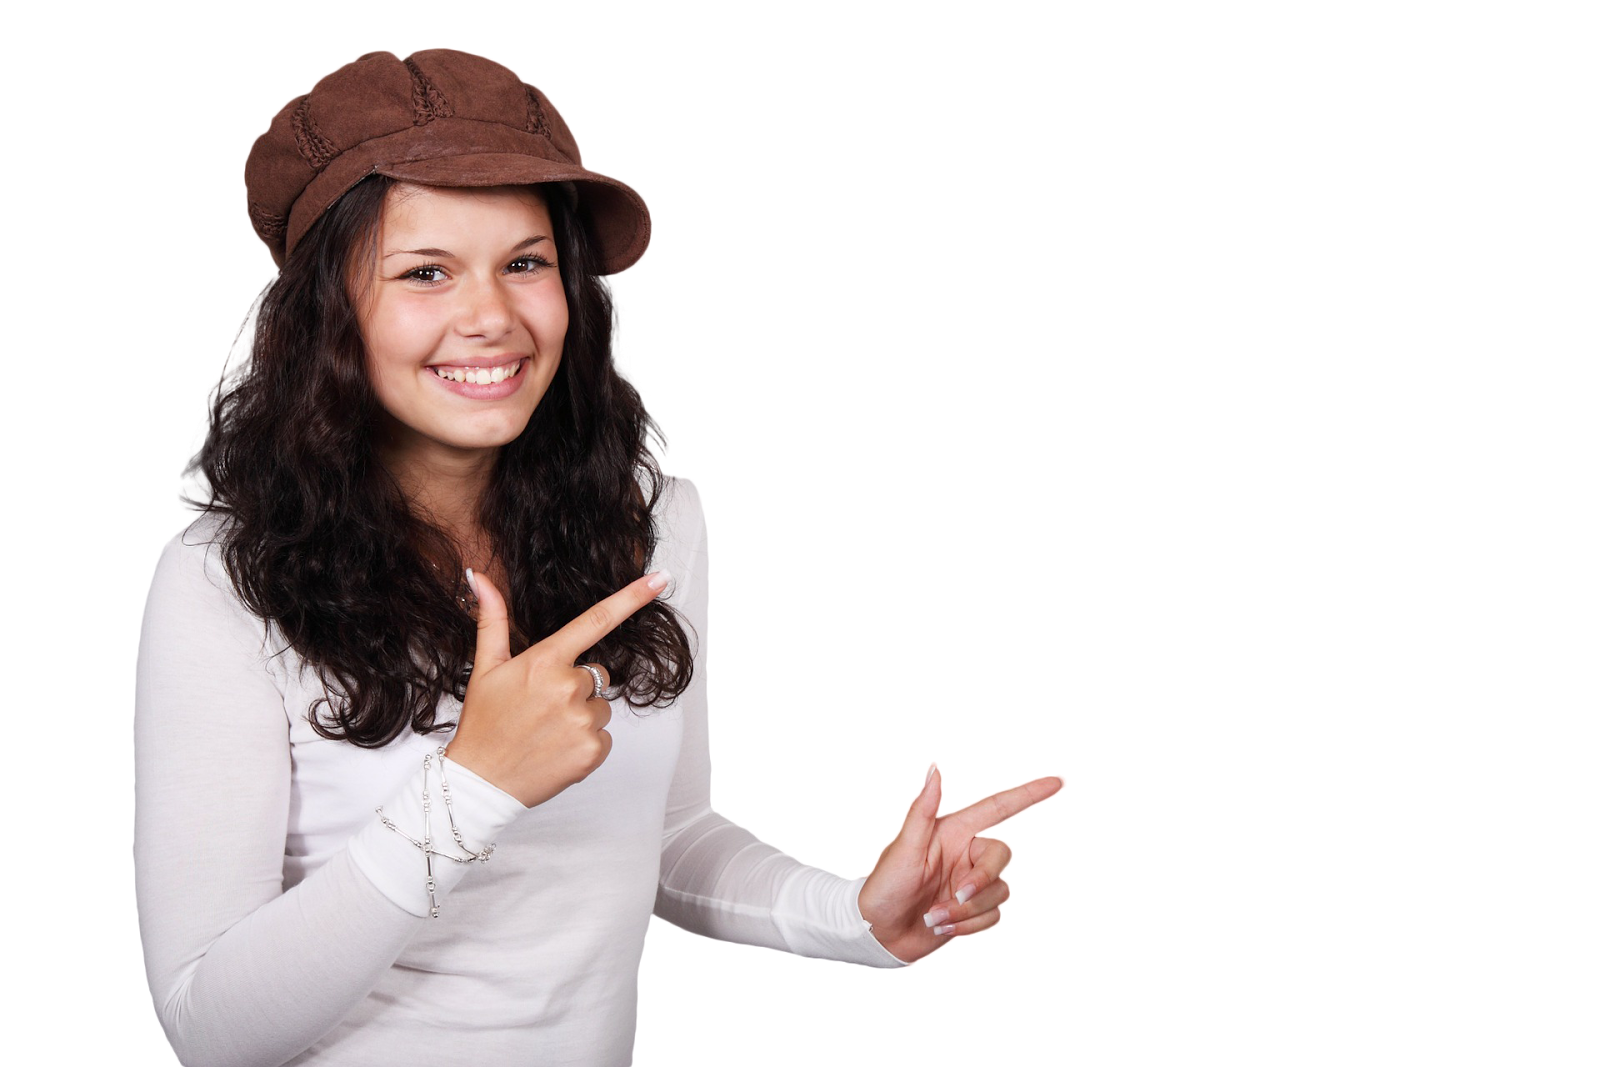 Woman pointing png. Elinkterest free images select